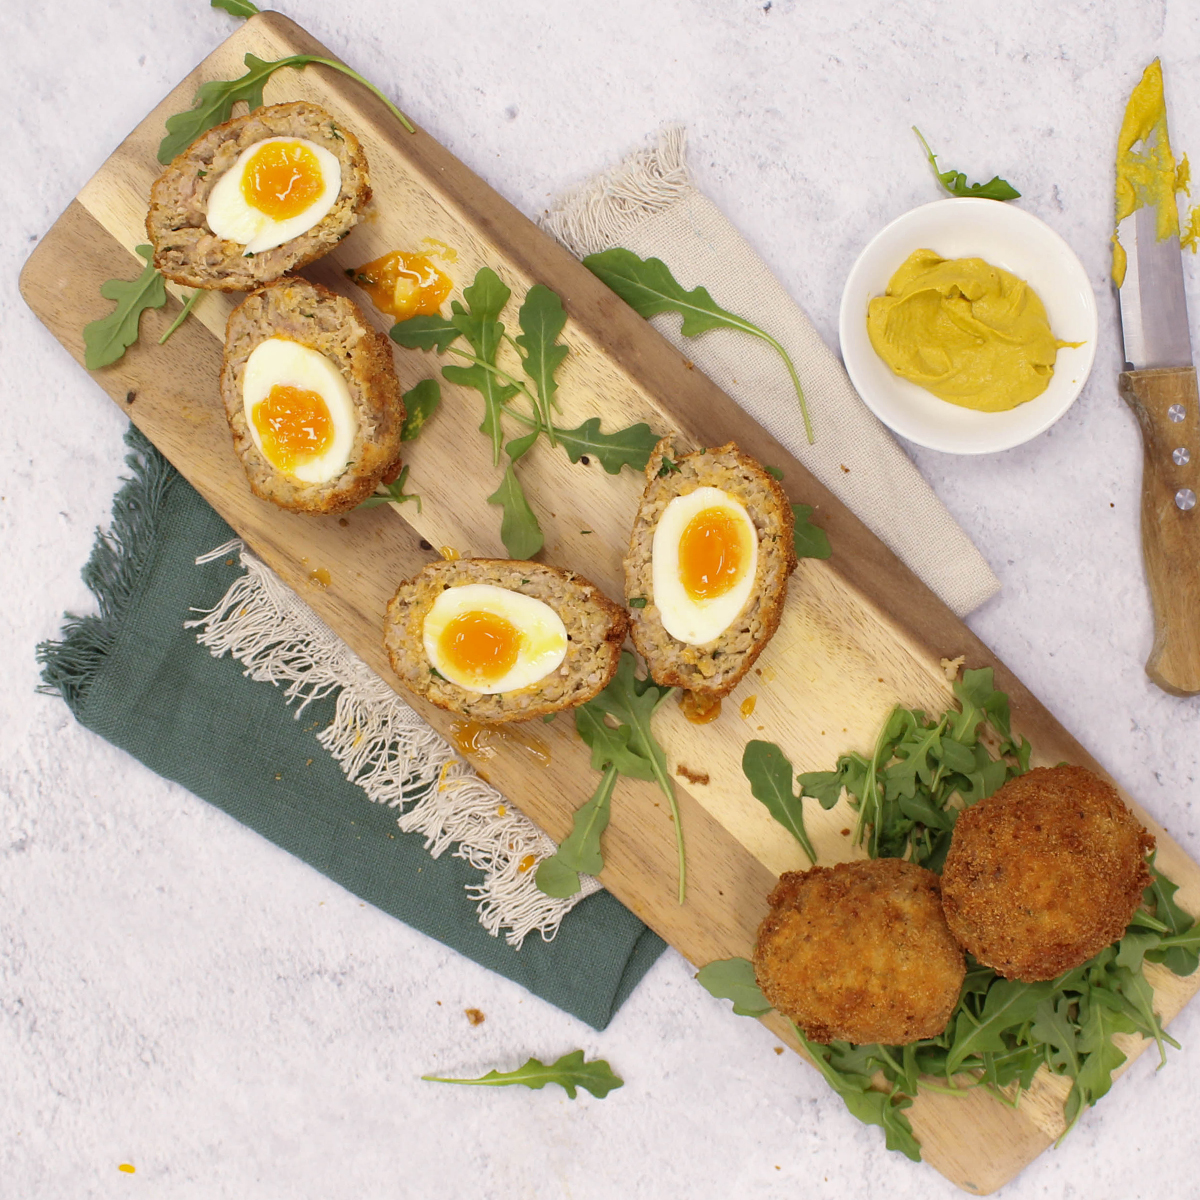 The Best Scotch Eggs Recipe - Pork Sausages